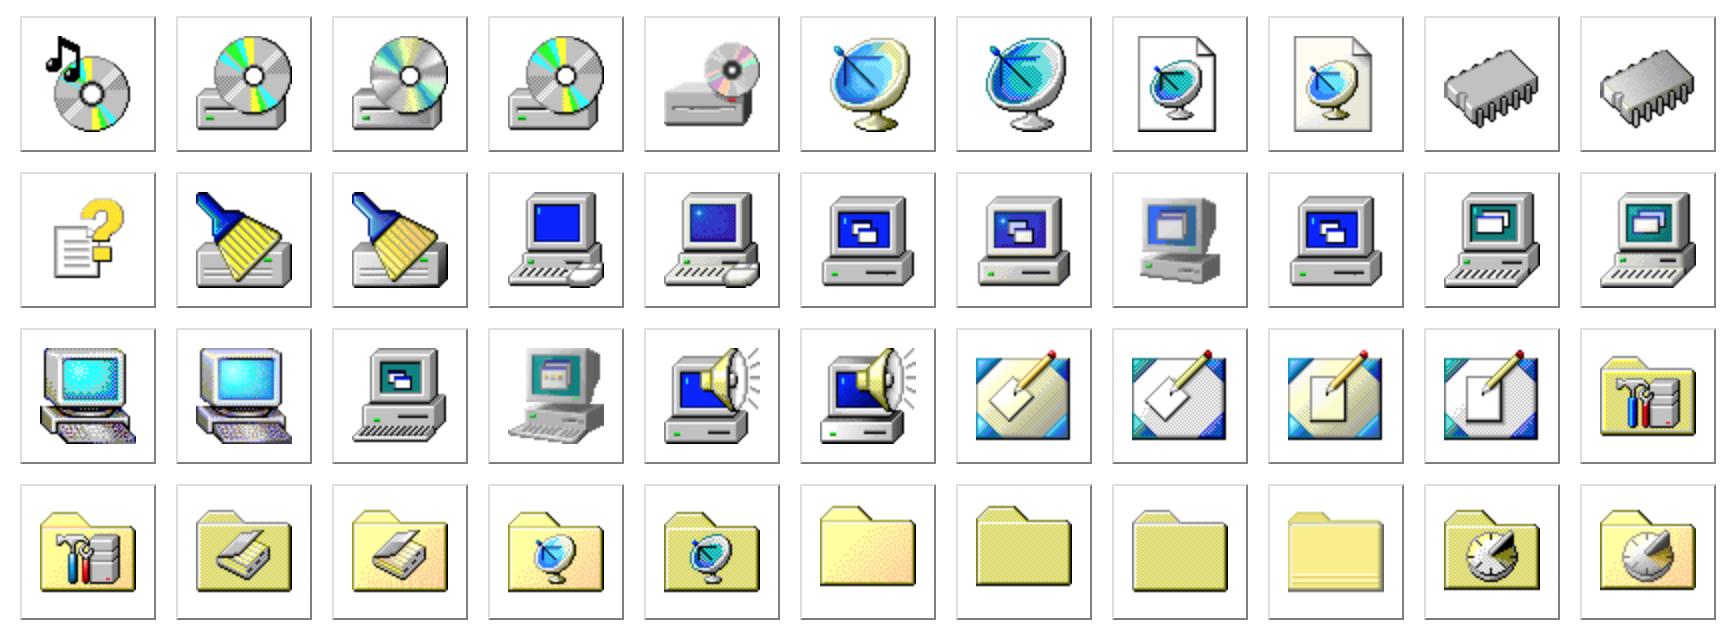 Online viewer for Windows 98's icon set